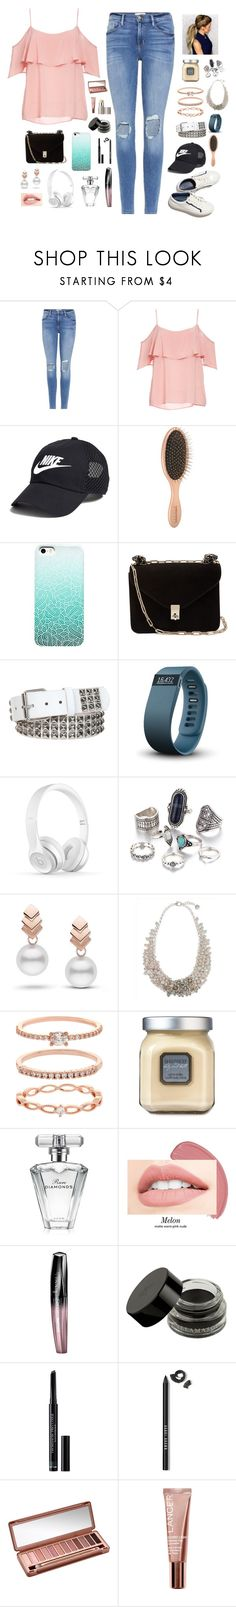 """""""Spring Ruffles"""" by countless-possibilities ❤ liked on Polyvore featuring Frame, BB Dakota, NIKE, Valentino, Fitbit, Escalier, Jaeger, Accessorize, Laura Mercier and Avon"""